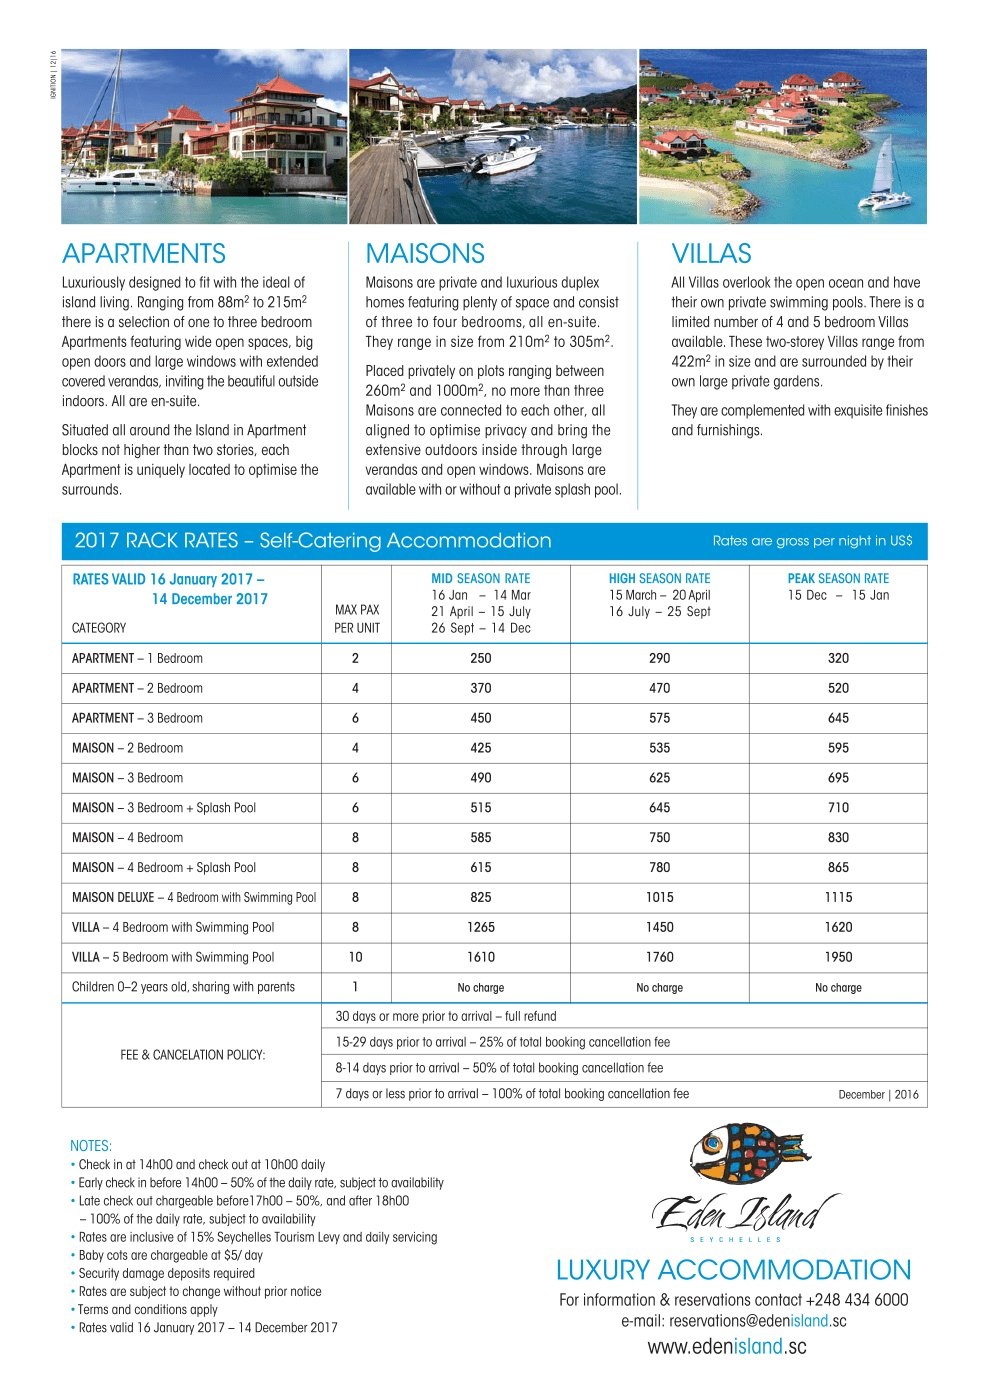 Best Average Water Bill For 2 Bedroom Apartment Gas Per Month With Pictures